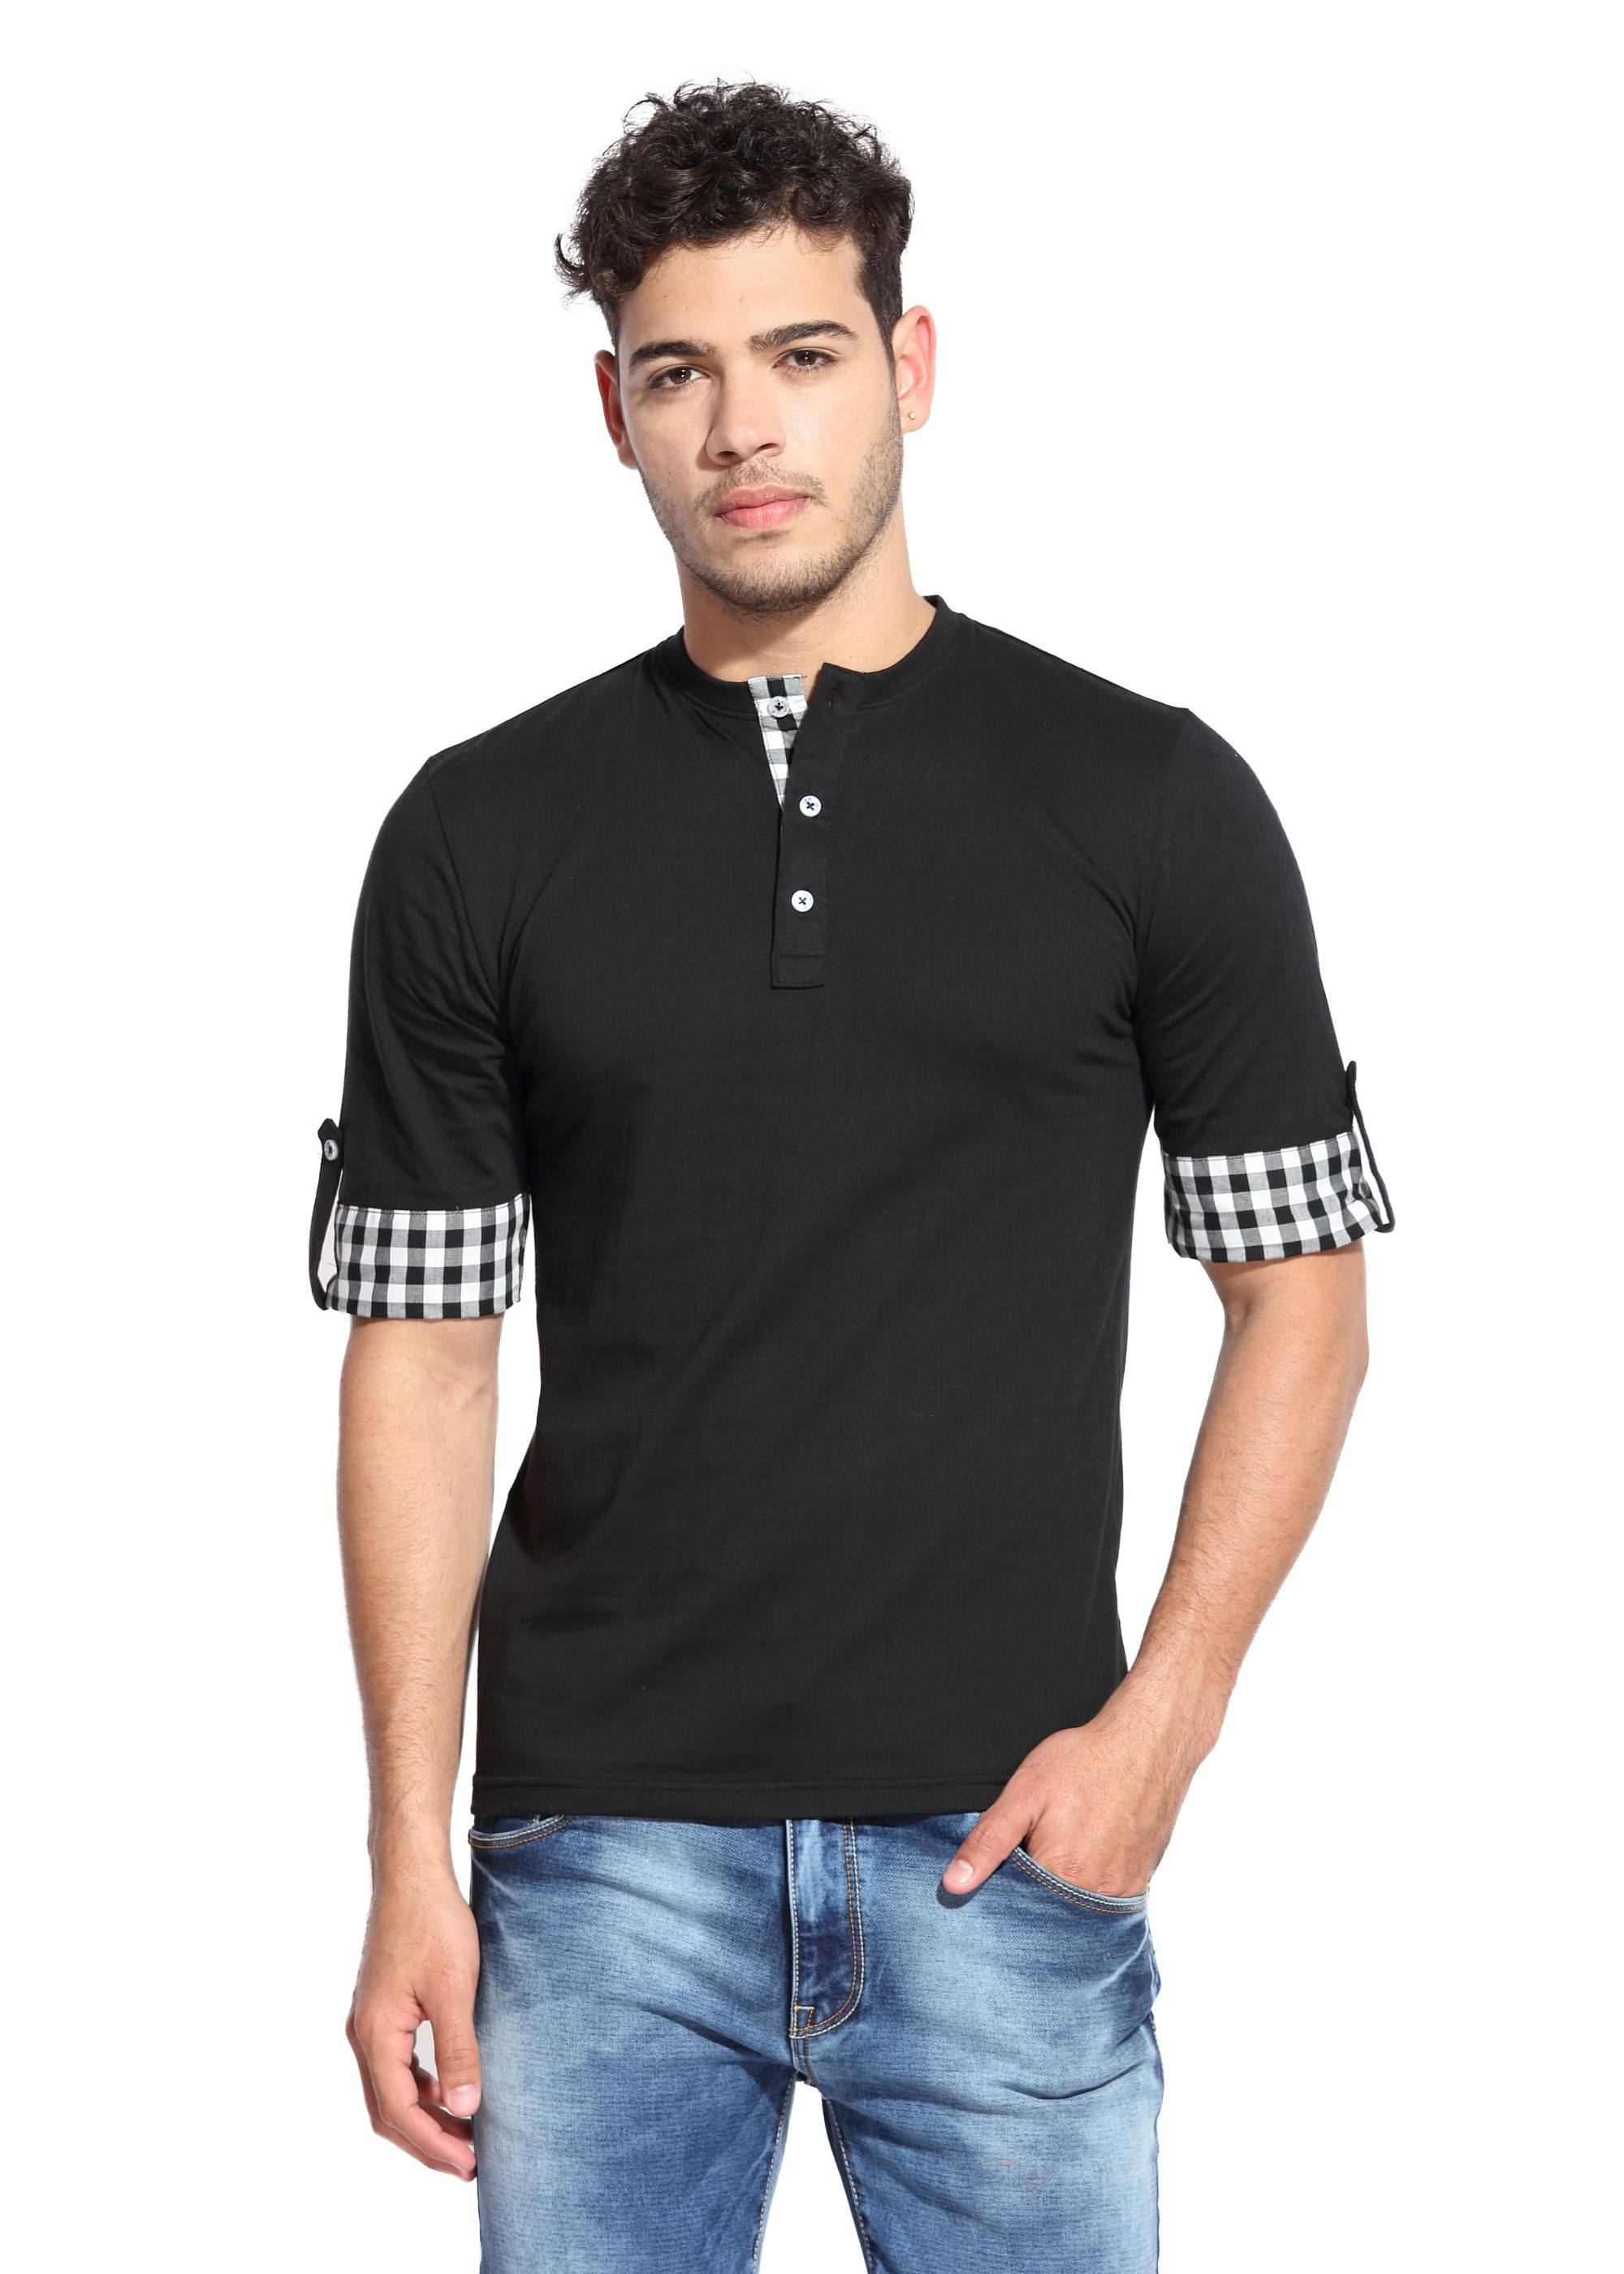 Le Bison Black Round T-Shirt Pack of 1